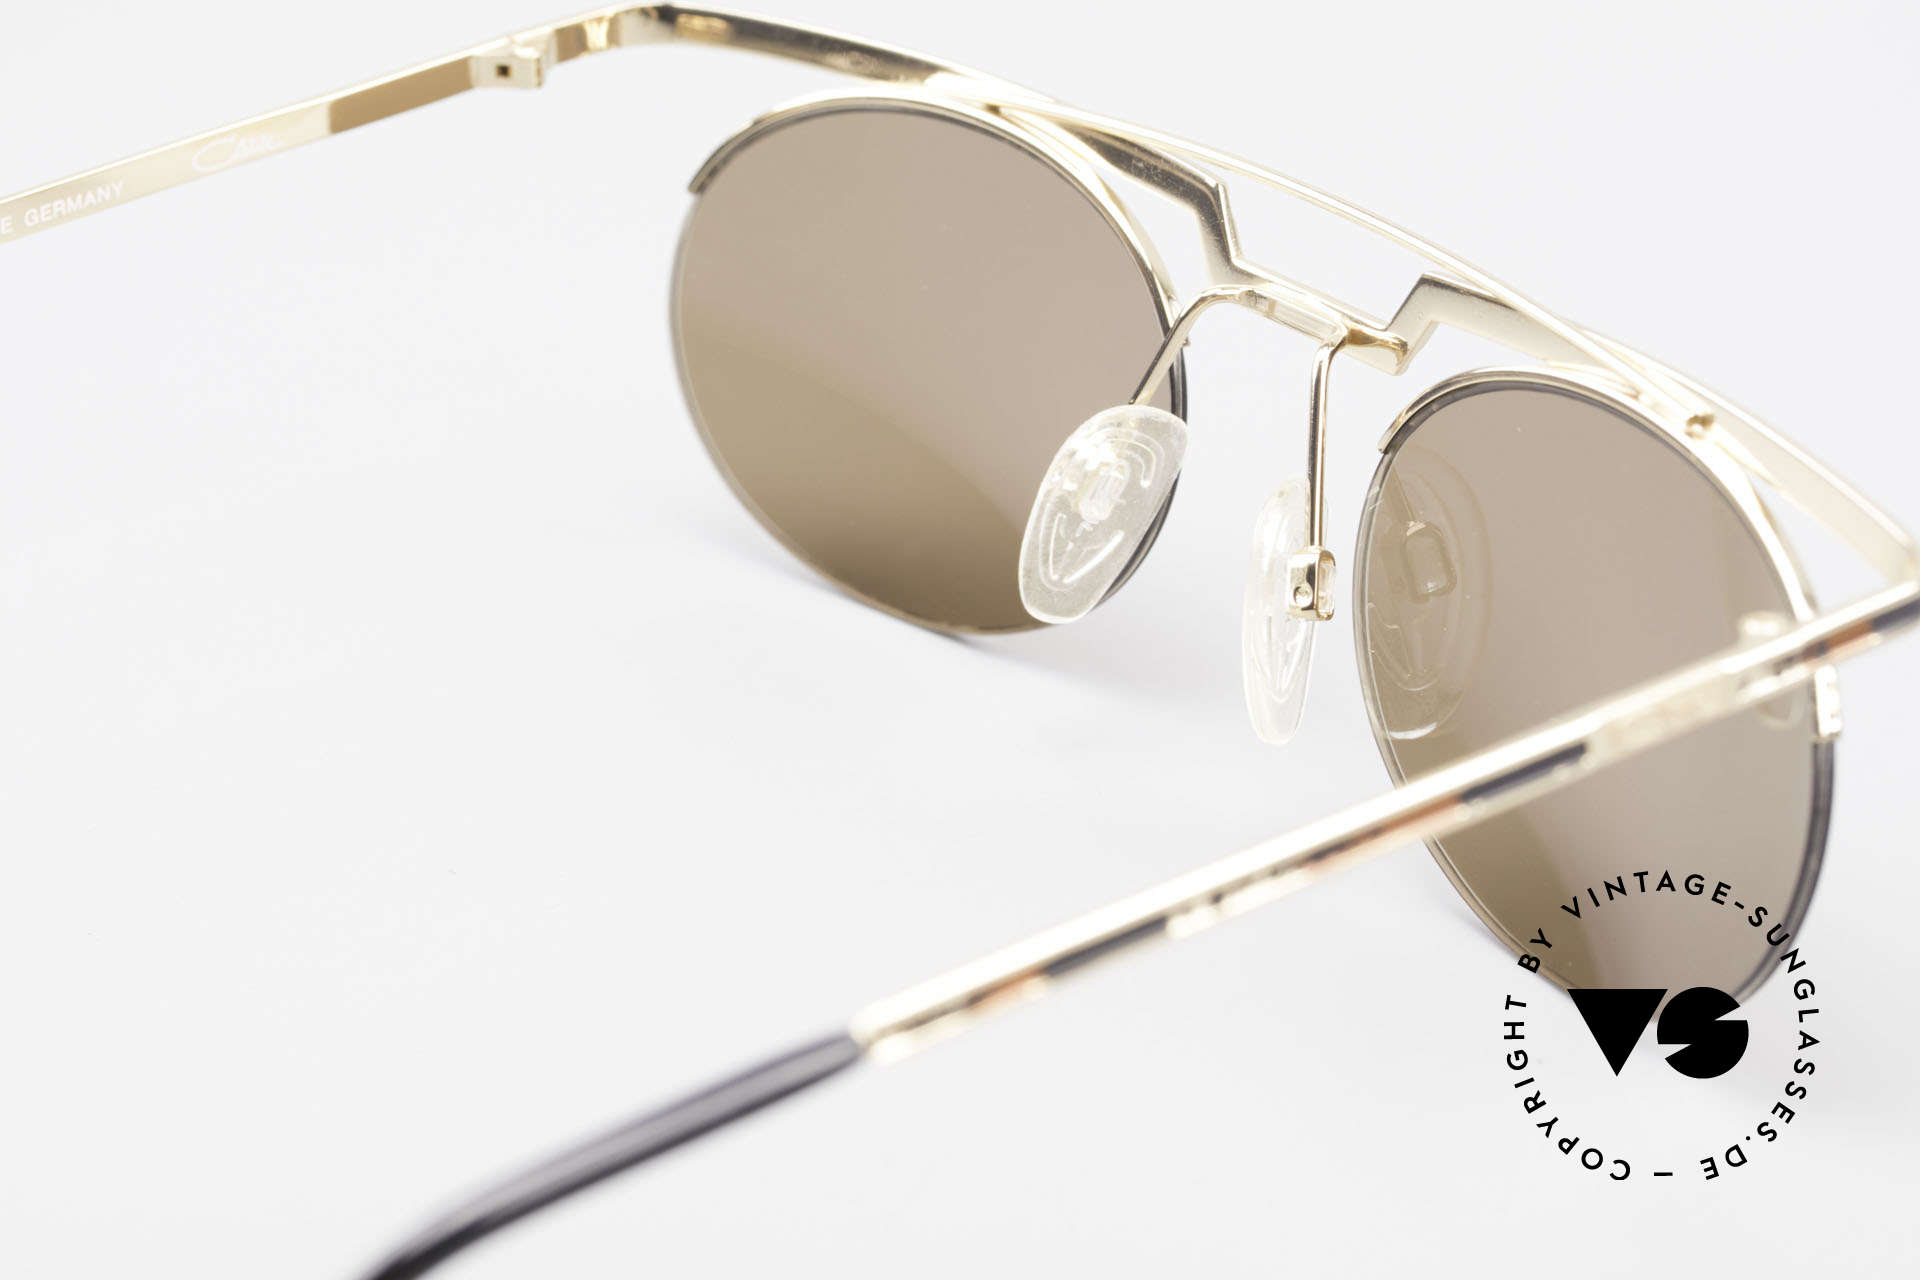 Cazal 758 Original Cazal Sunglasses 90's, new old stock (like all our rare old vintage Cazal eyewear), Made for Men and Women